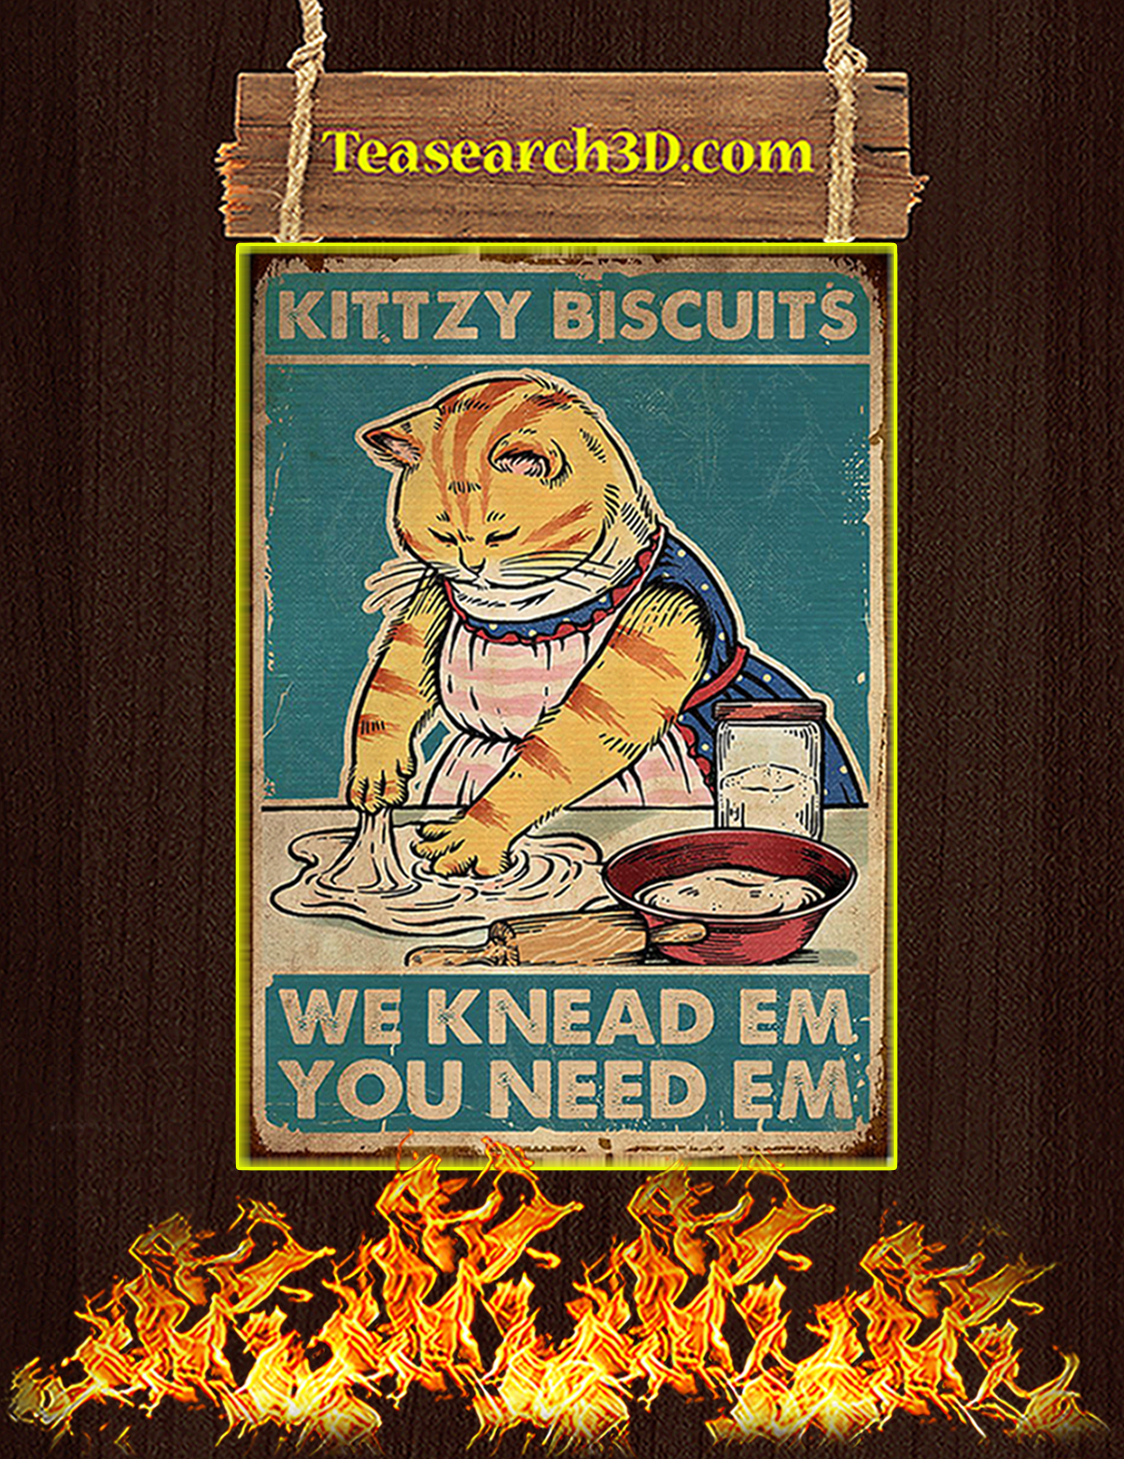 Kittzy Biscuits We Knead Em You Need Em Poster A3